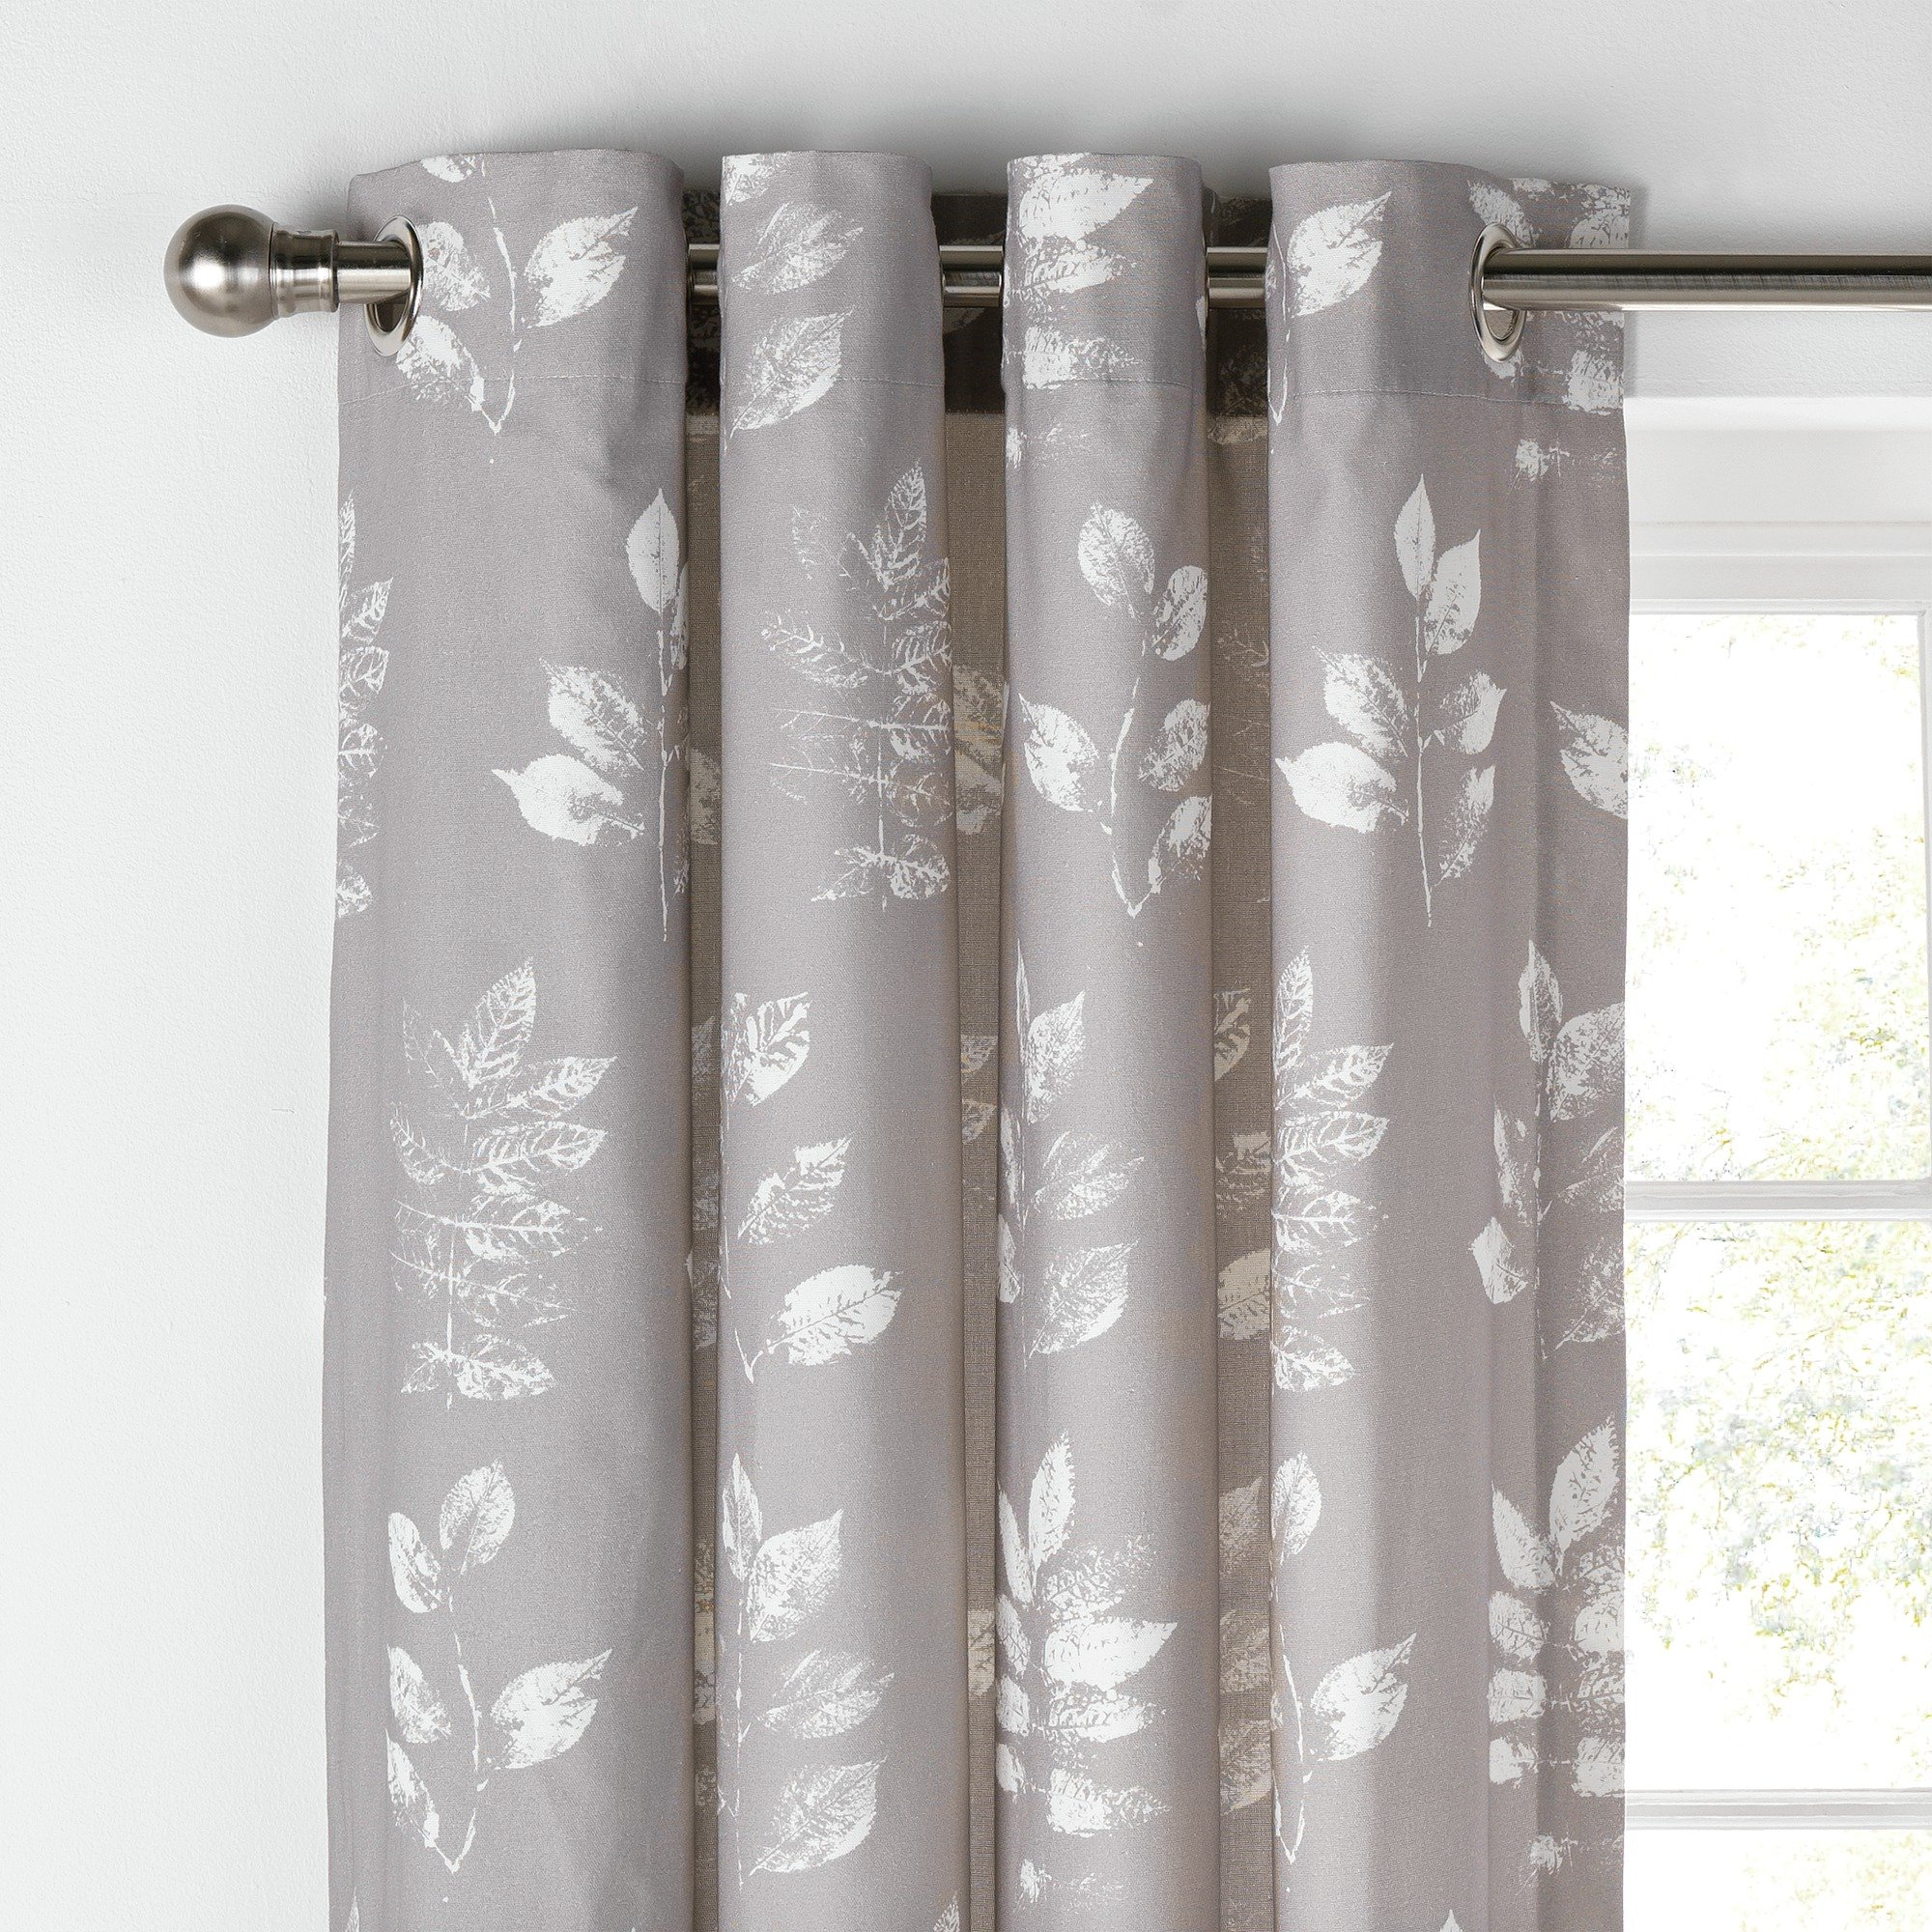 Image of Collection Artisan Leaves Lined Curtains - 229x229cm - Grey